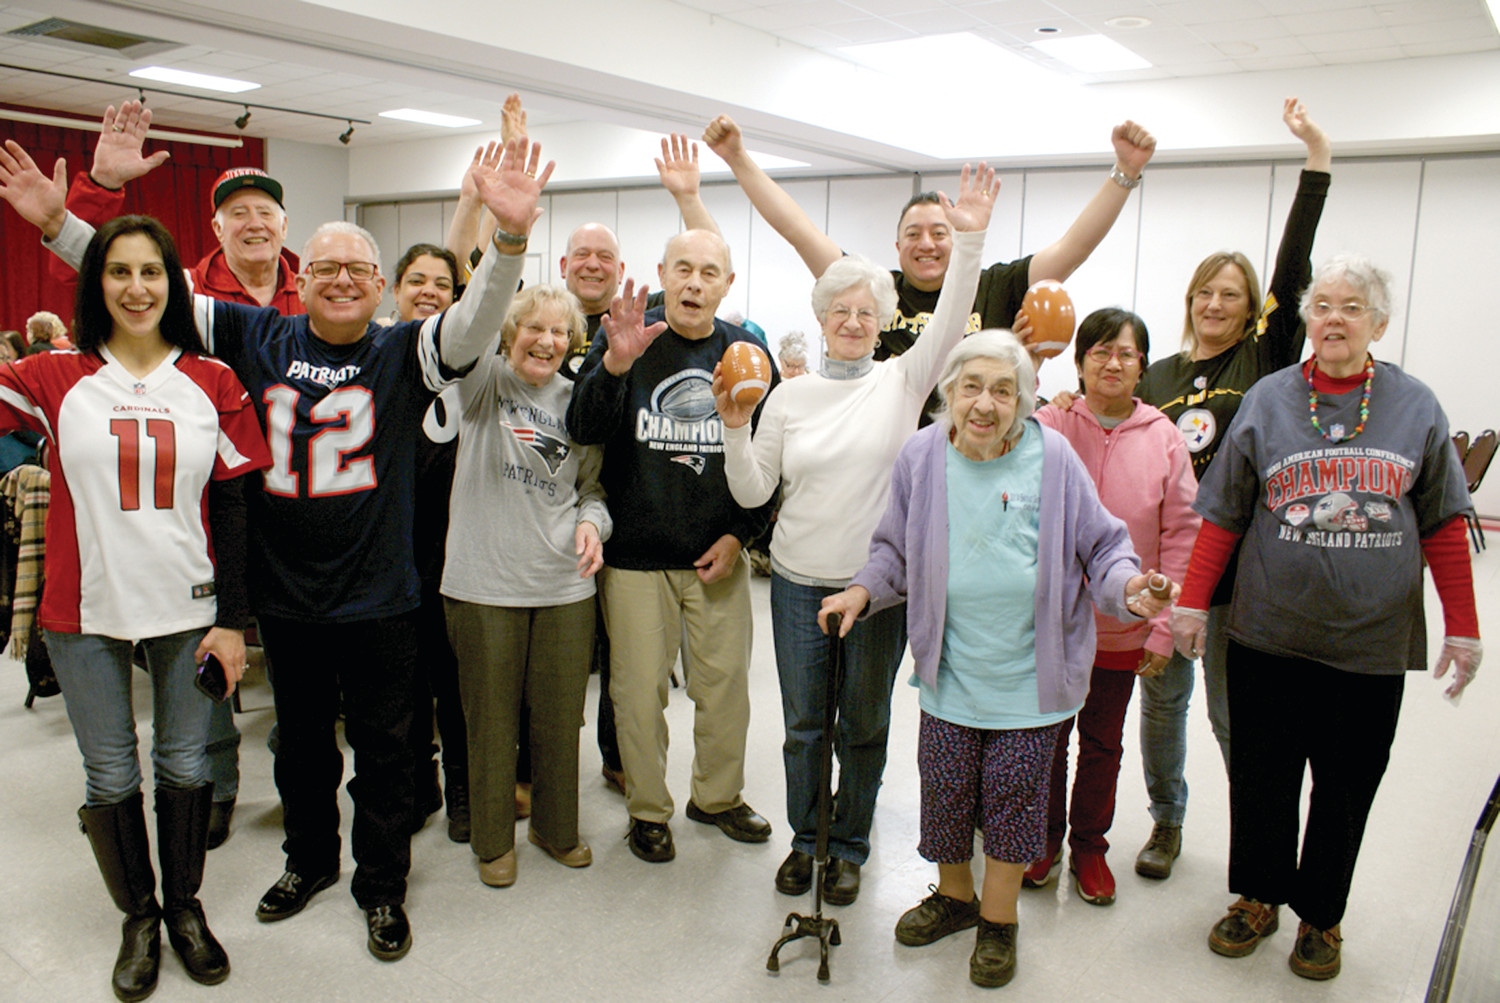 SUPER BOWL FUN AT SENIOR CENTER: On Feb. 3, Cranston Senior Center, held a Show Your Colors for some Super Bowl fun luncheon. Pictured are members of the staff, members and raffle prize winners with Jeffrey Barone, Executive Director of Cranston Senior Center pictured in his #12 Tom Brady shirt.